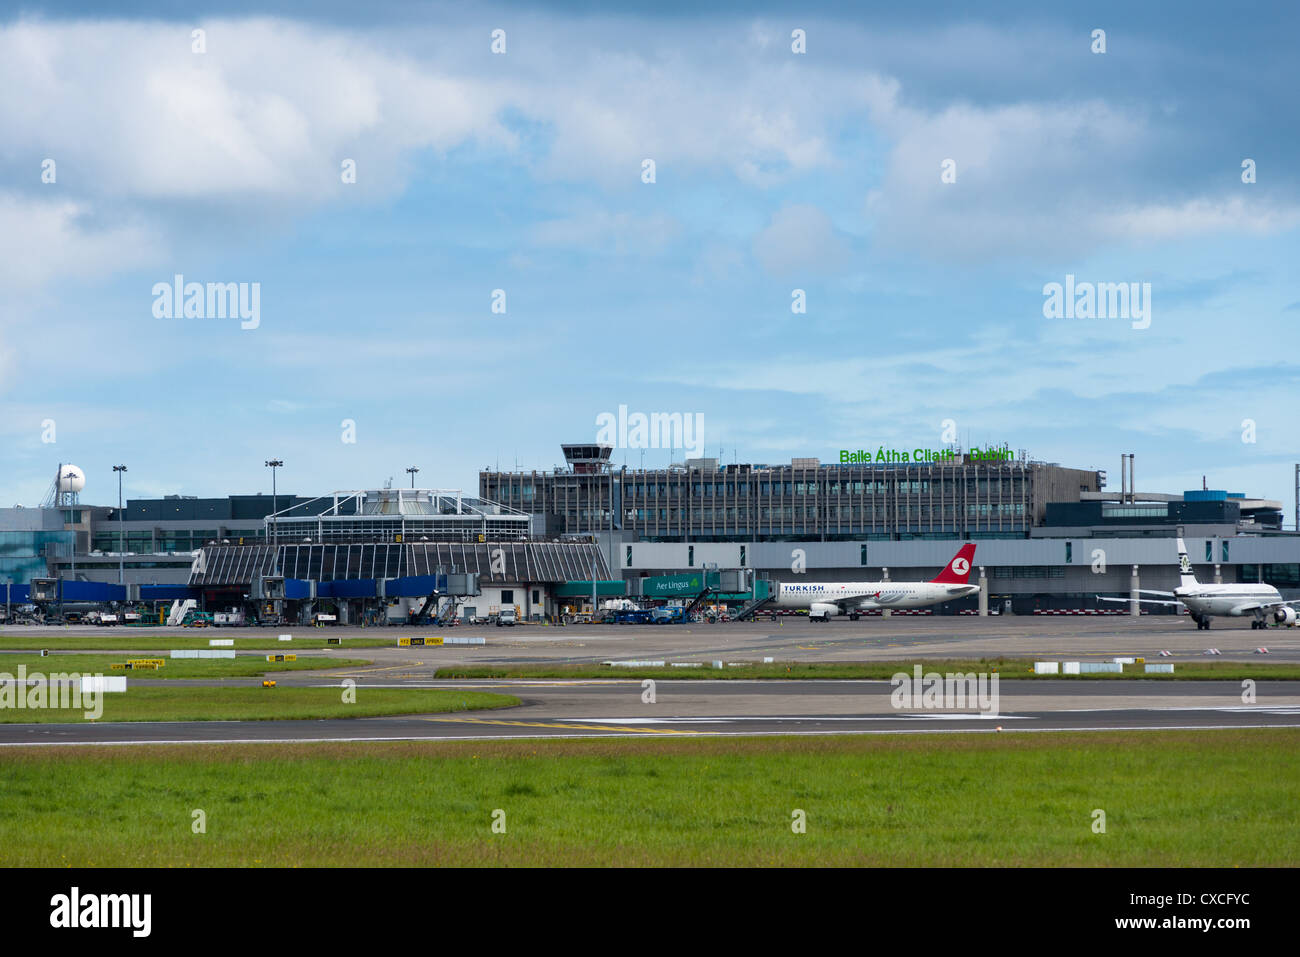 Terminal 1 (T1) at Dublin Airport. Republic of Ireland. Stock Photo